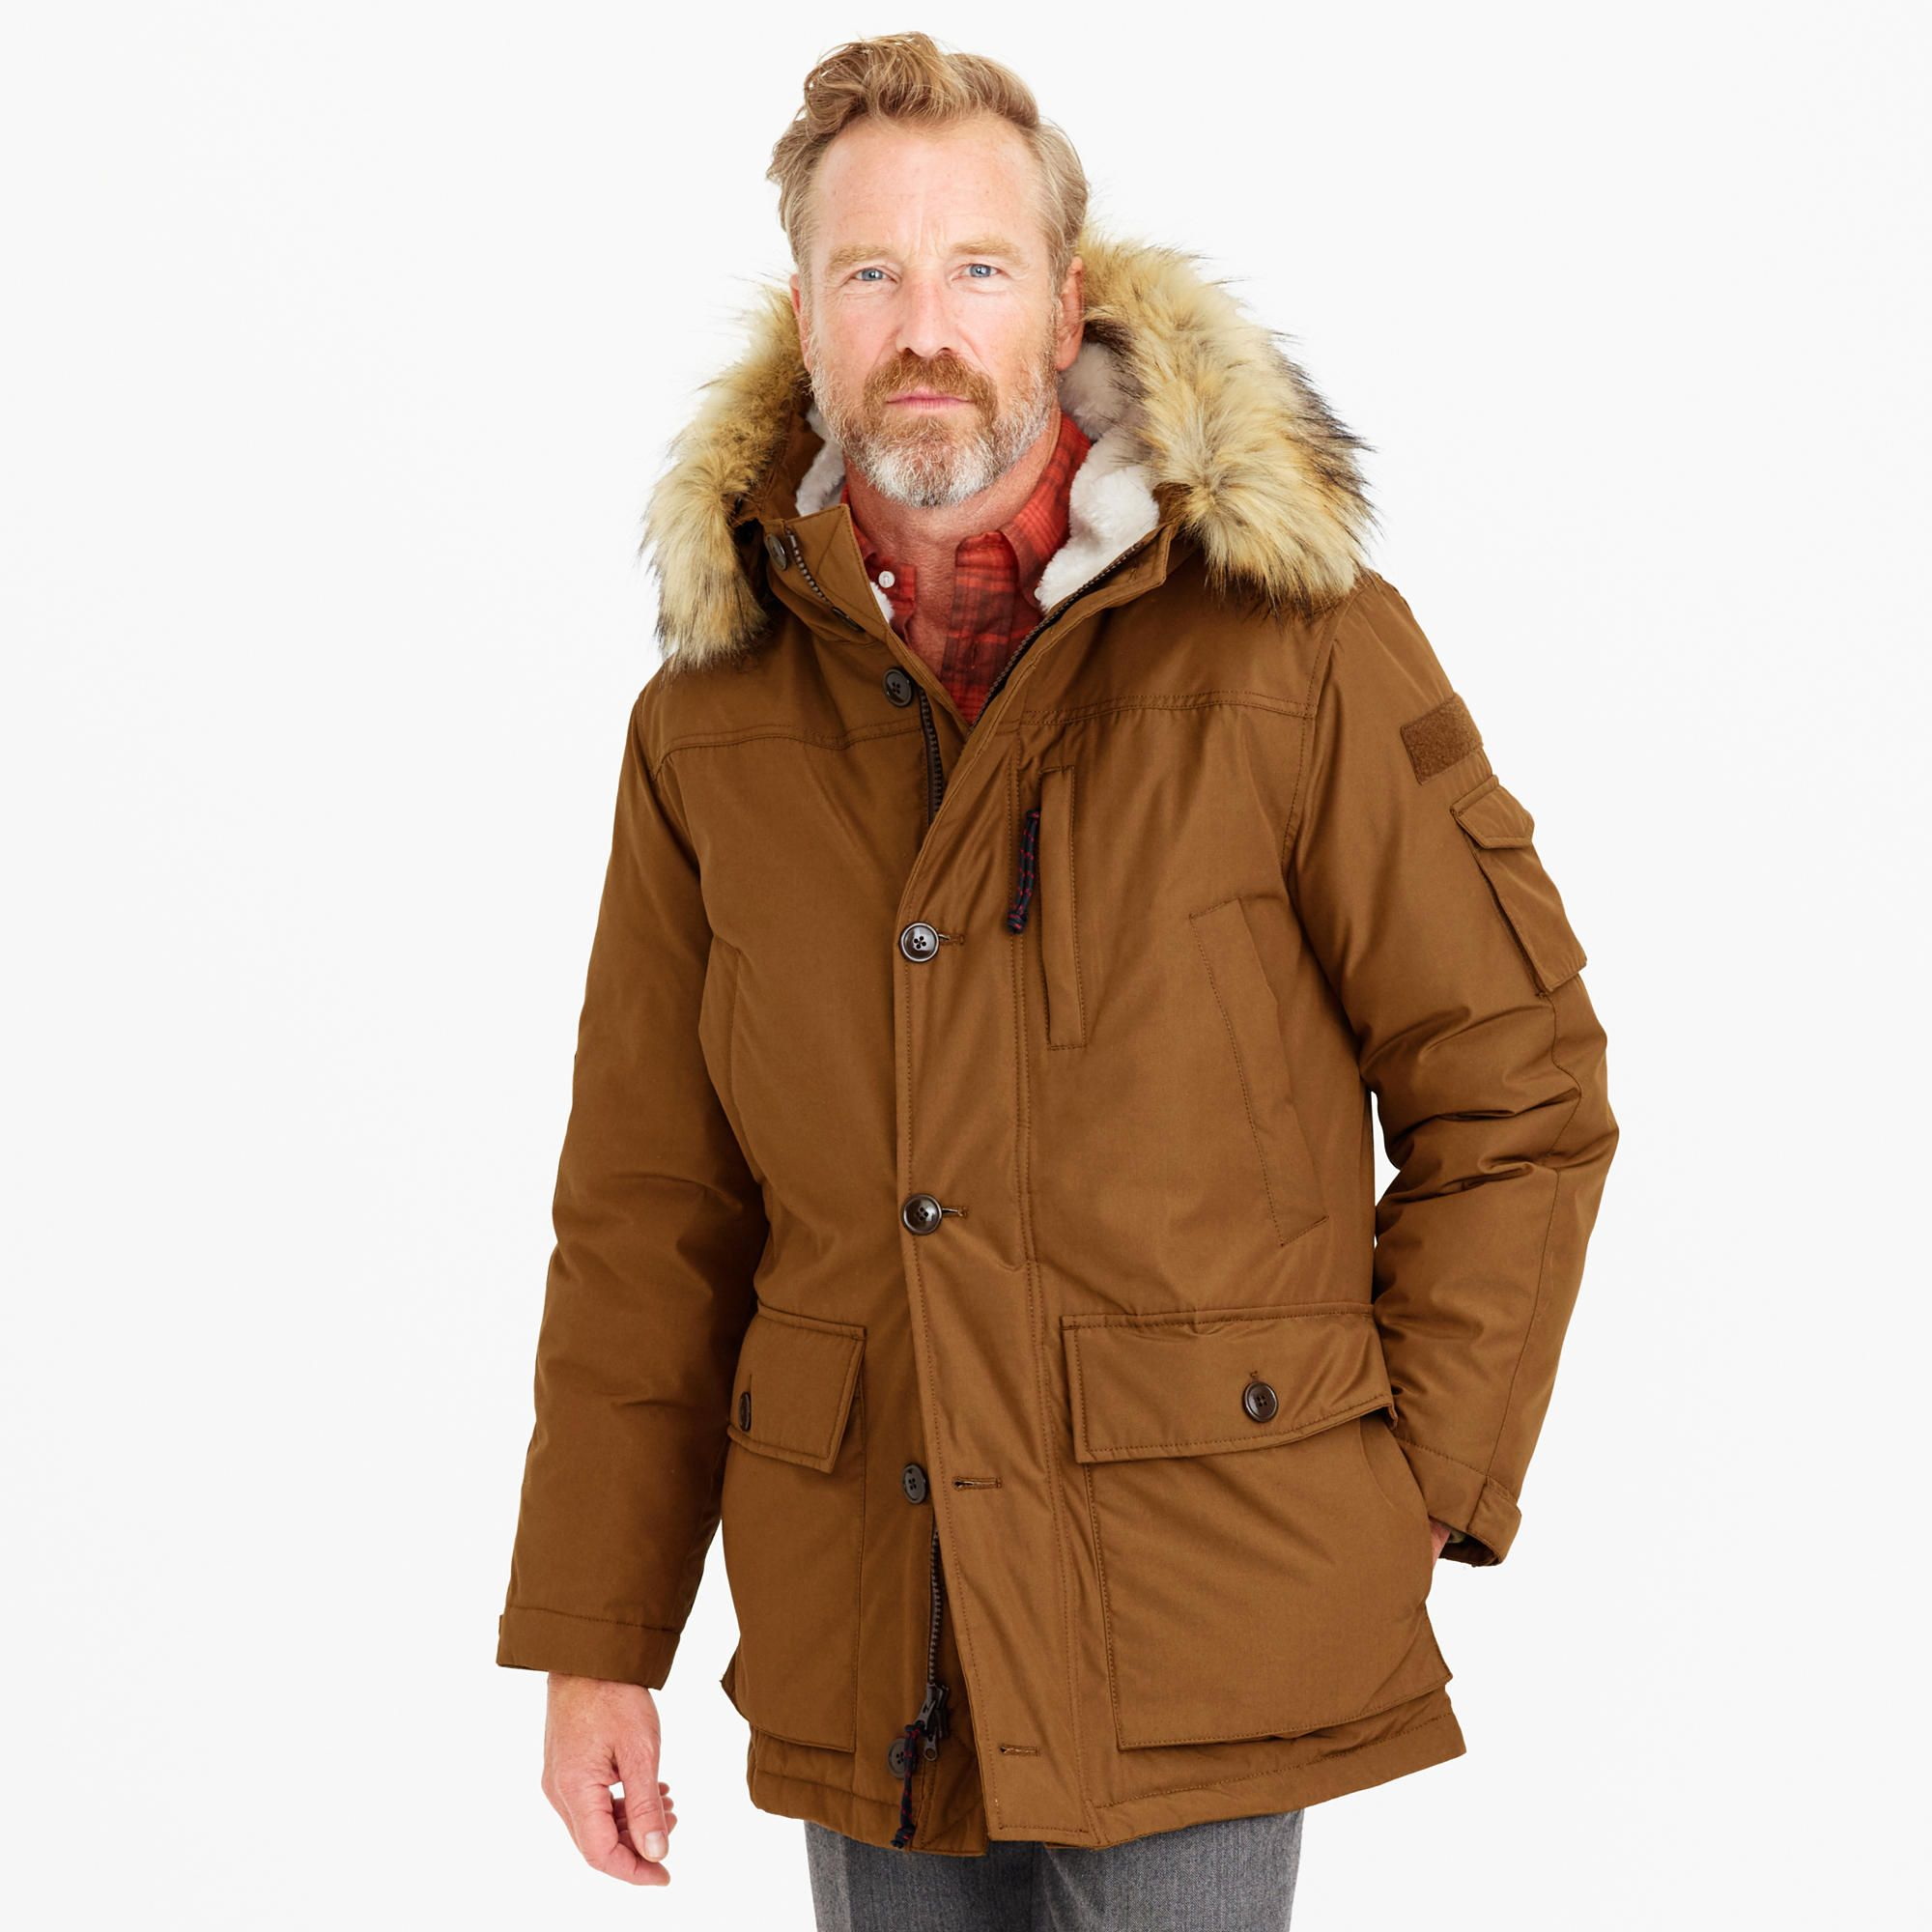 e51357545 Nordic down parka | Men's Clothing | Down parka, Winter jackets, Parka